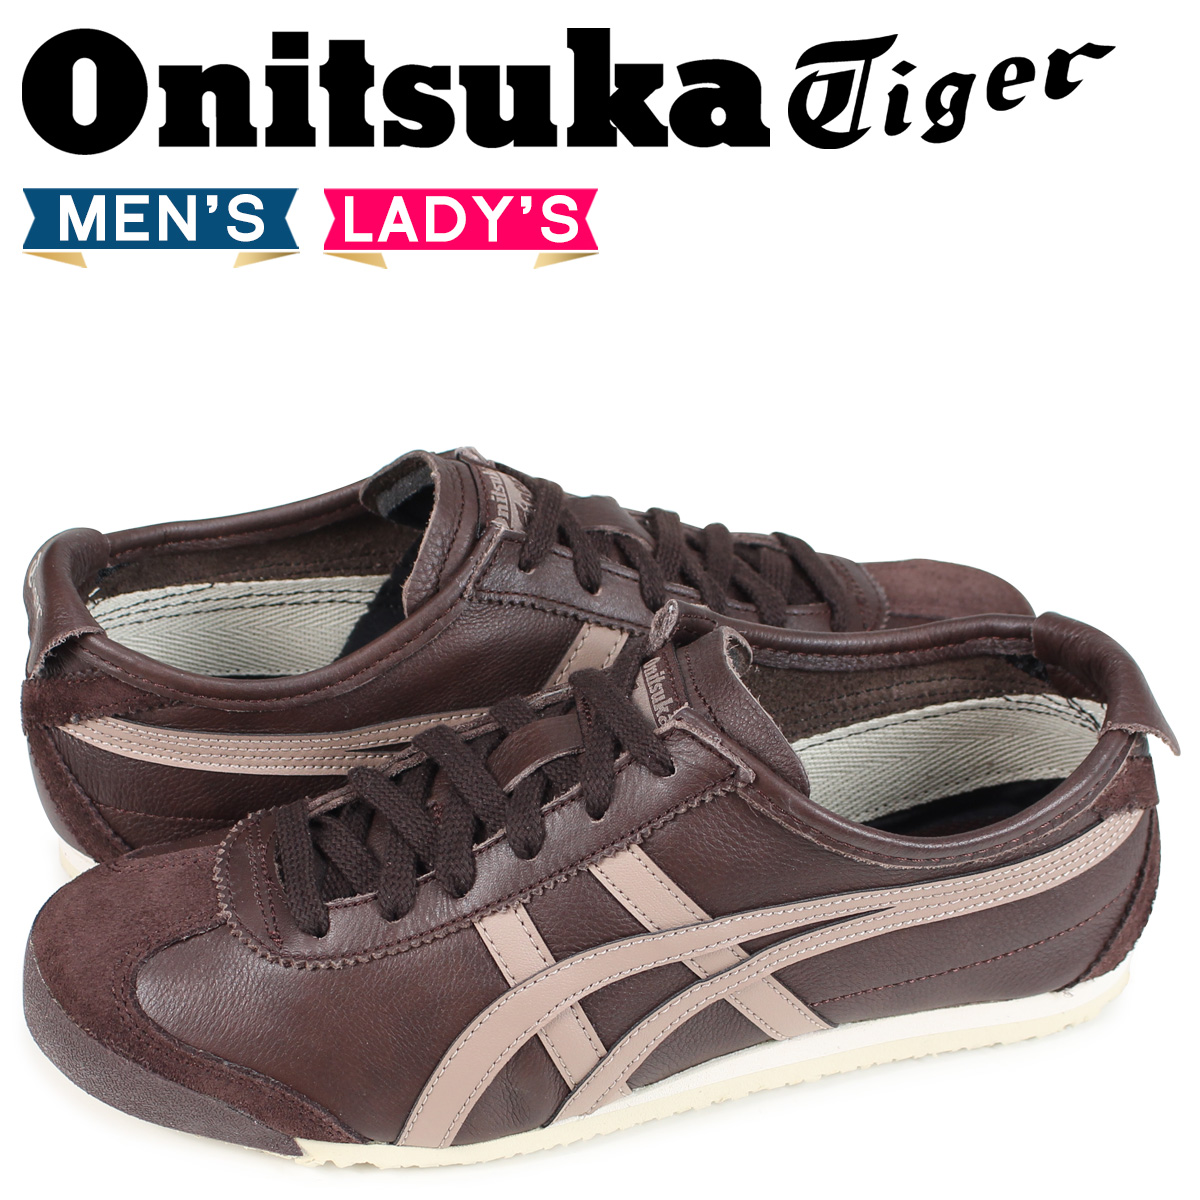 promo code 4b9fc a0390 Onitsuka tiger Onitsuka Tiger Mexico 66 MEXICO 66 men's lady's sneakers  1183A201-201 brown